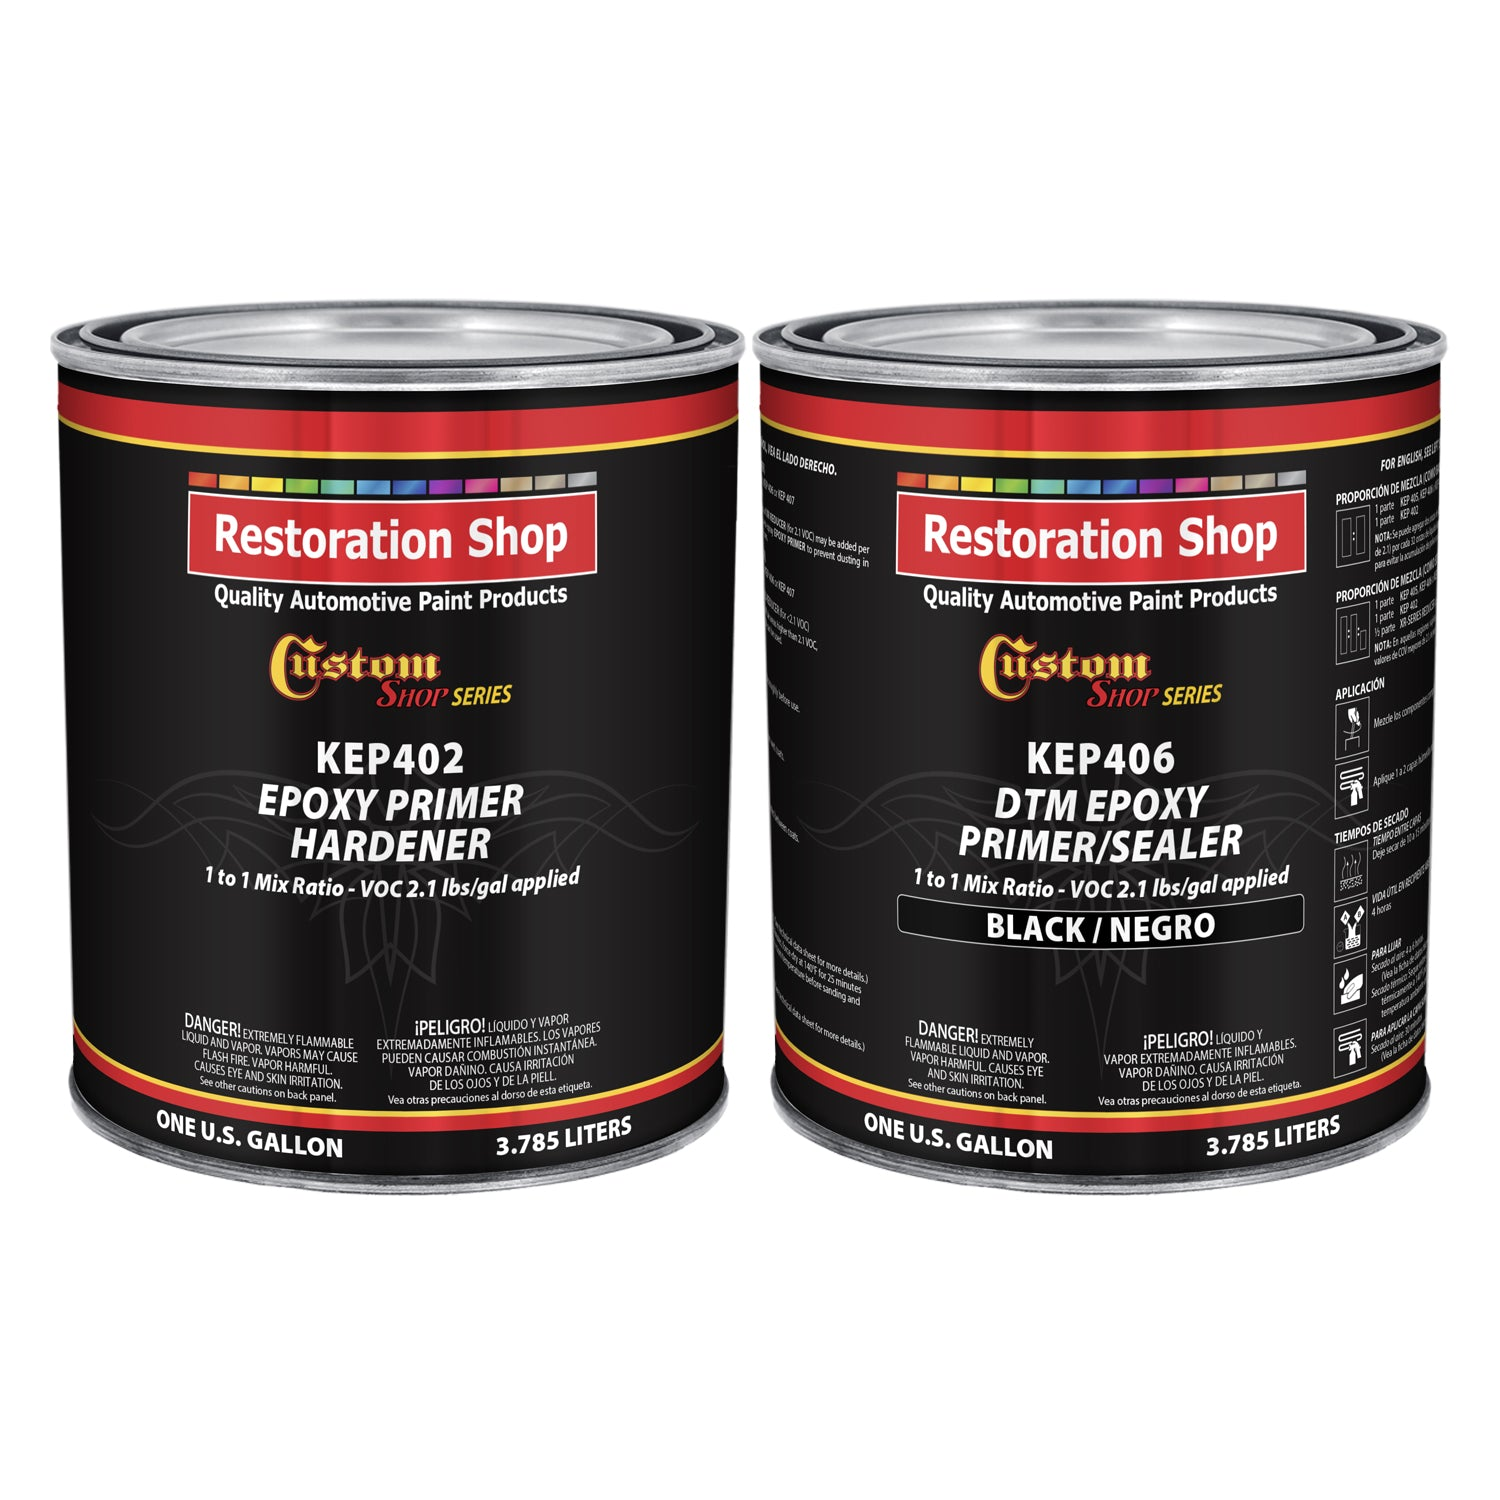 BLACK Epoxy Primer / Sealer 2.1 VOC (2-GALLON KIT) - Anti-Corrosive DTM Direct to Metal Fast Dry Primer